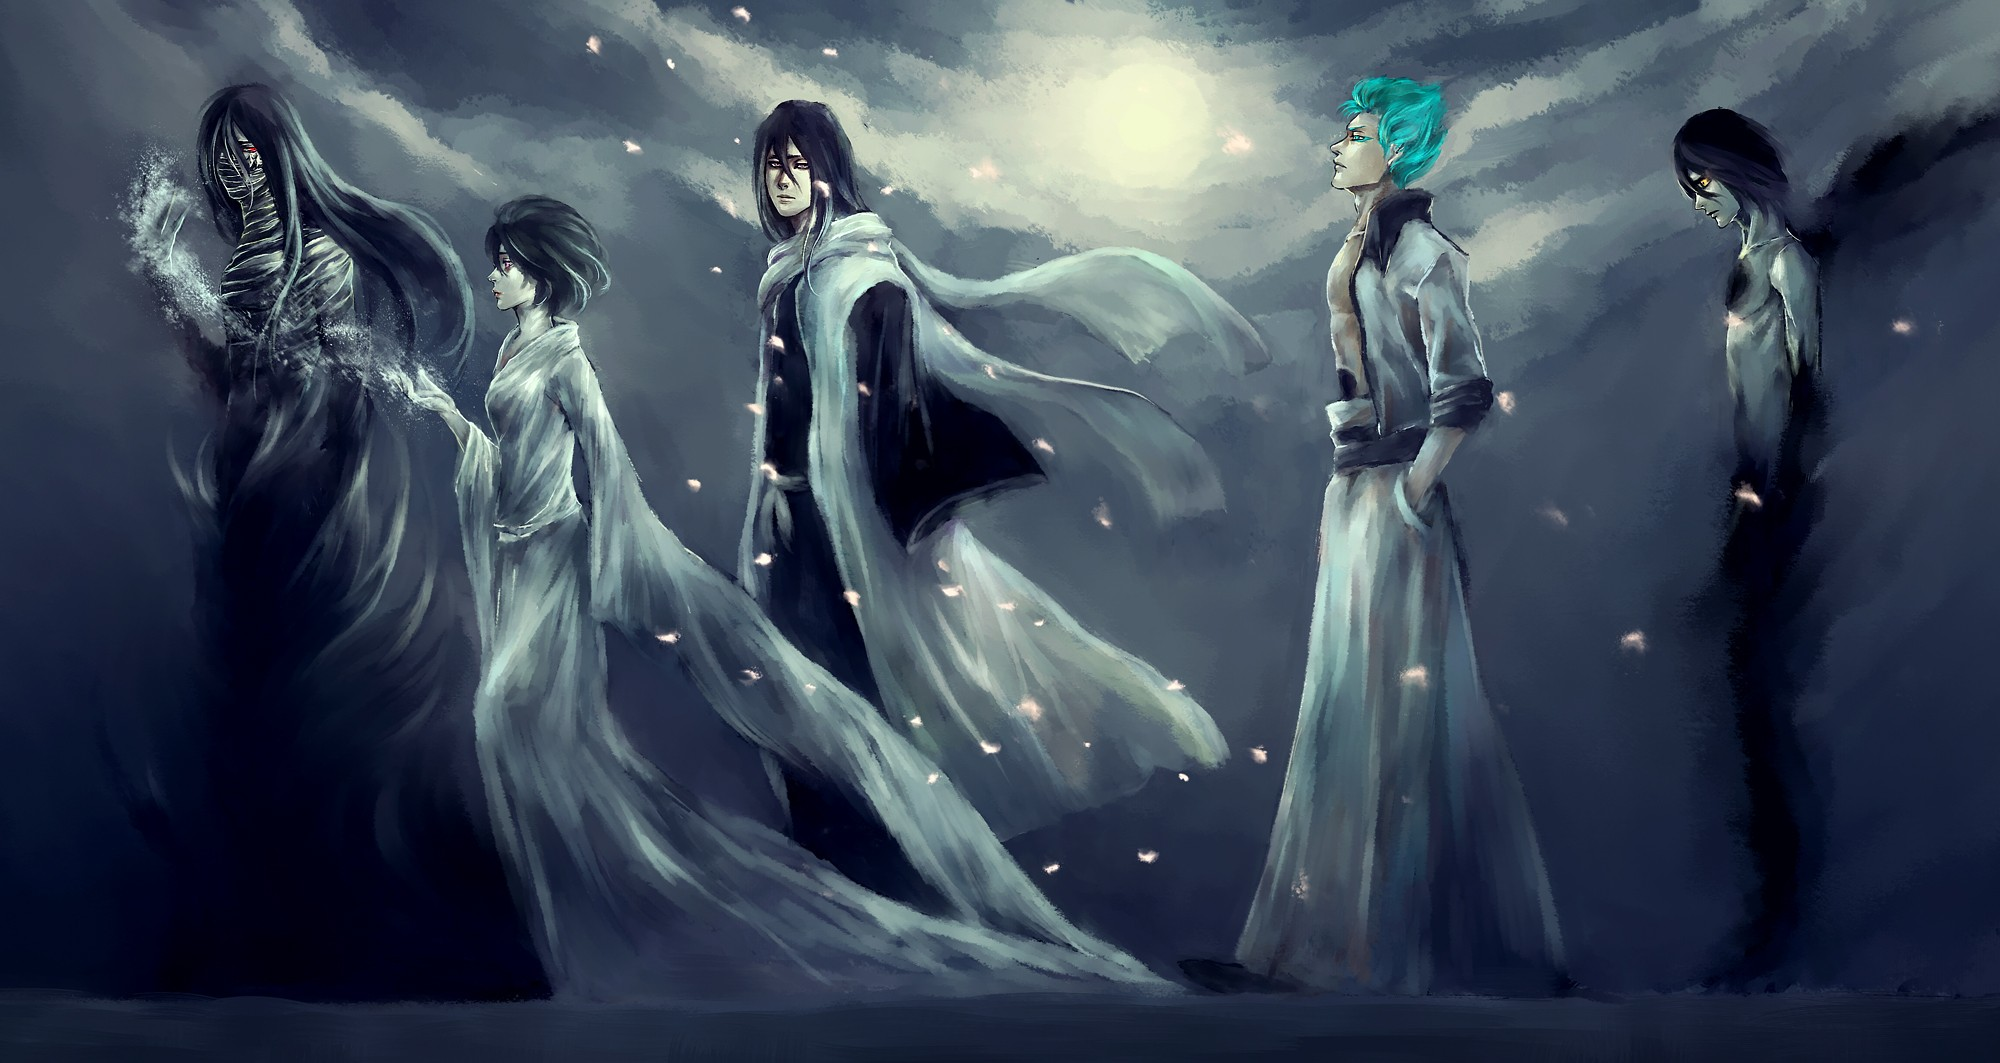 Bleach Ichigo Bankai Wallpaper Full